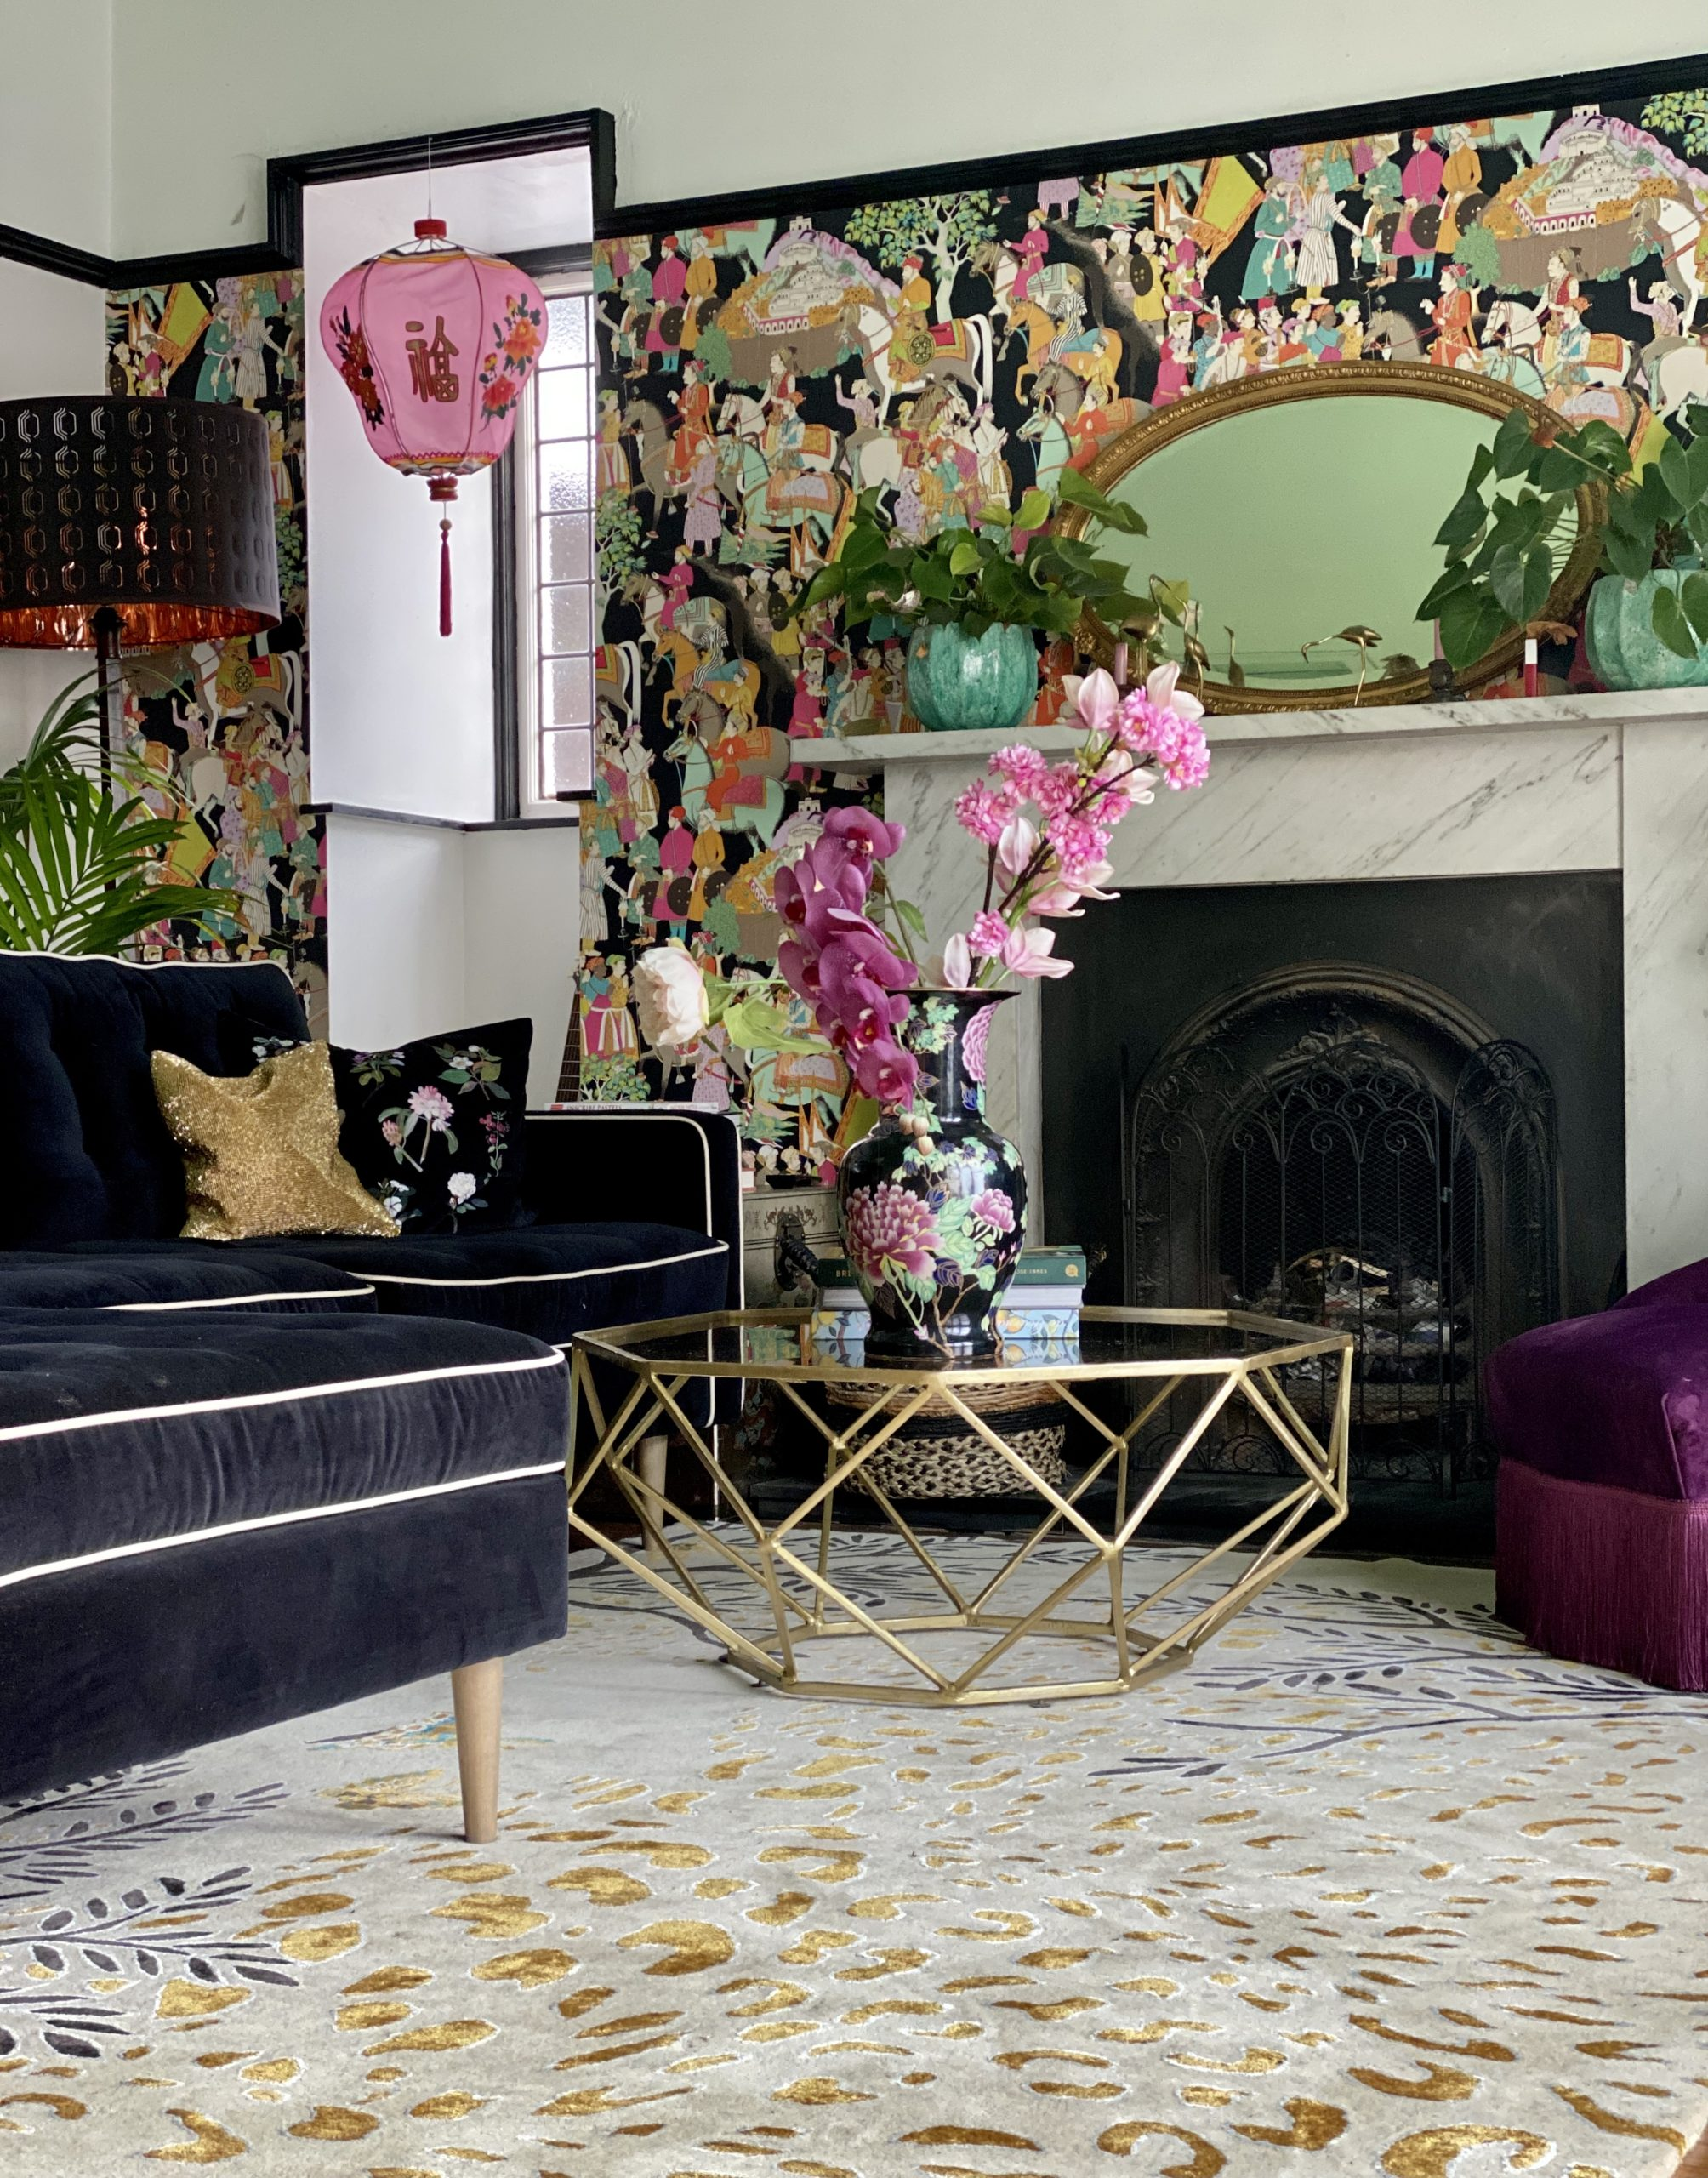 Leopard rug in living room setting